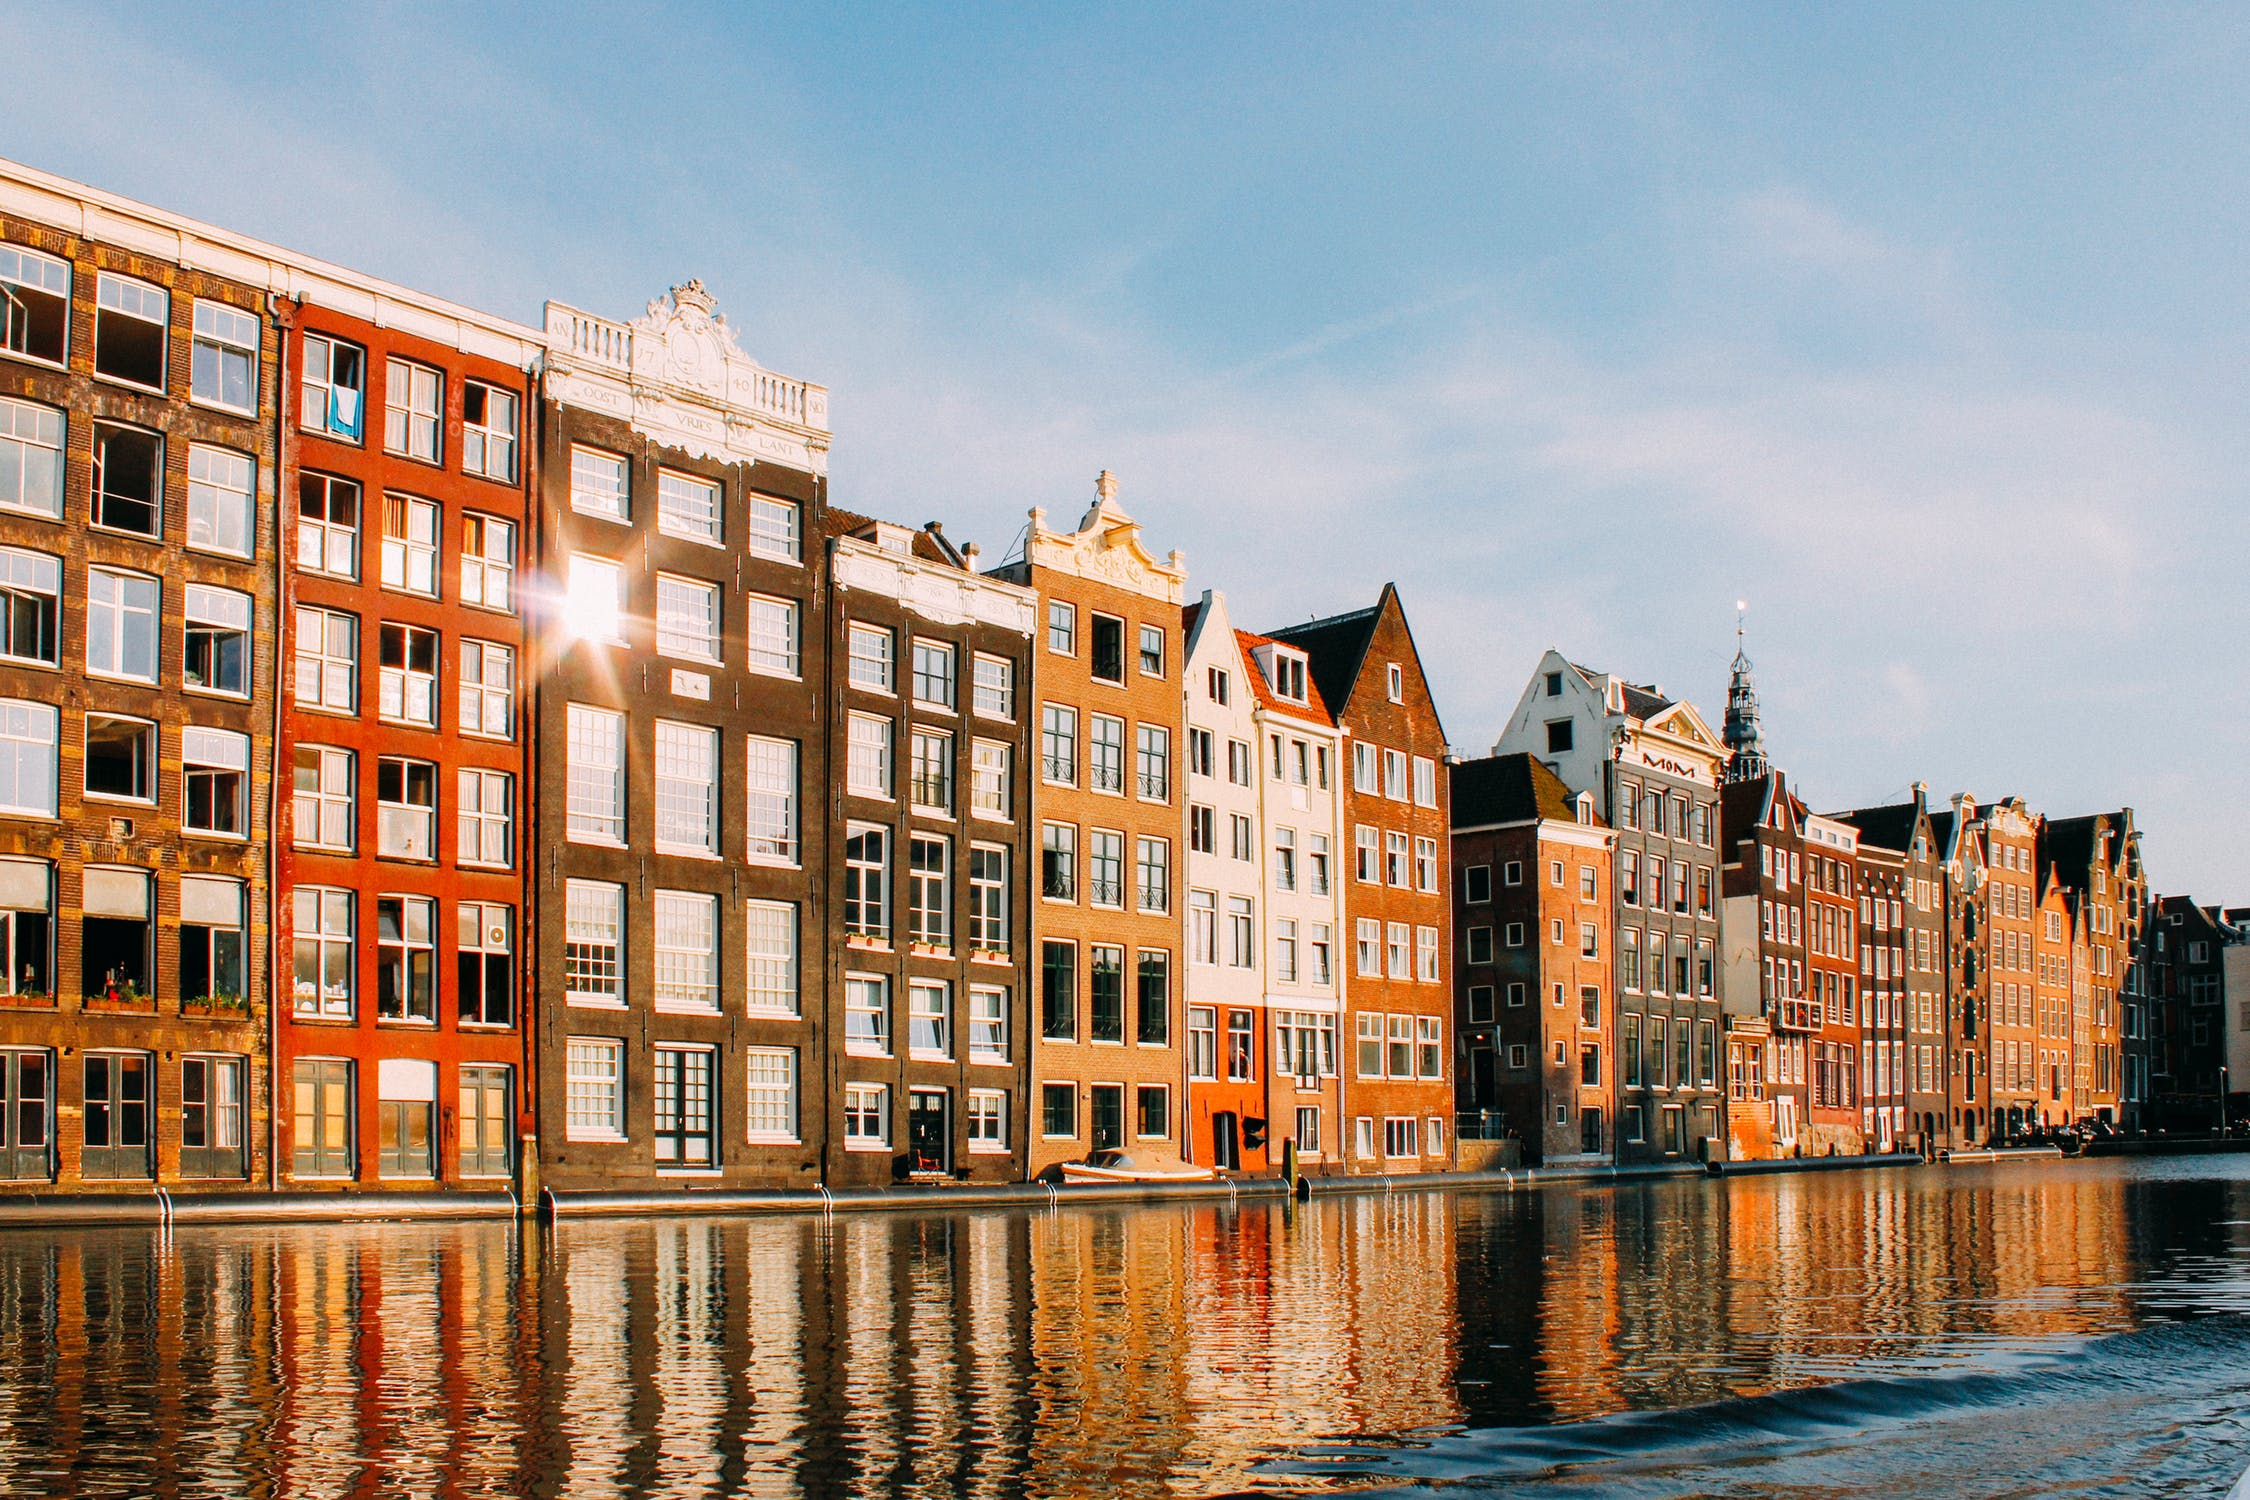 AMA Waterways introduces New Ship + New Itineraries